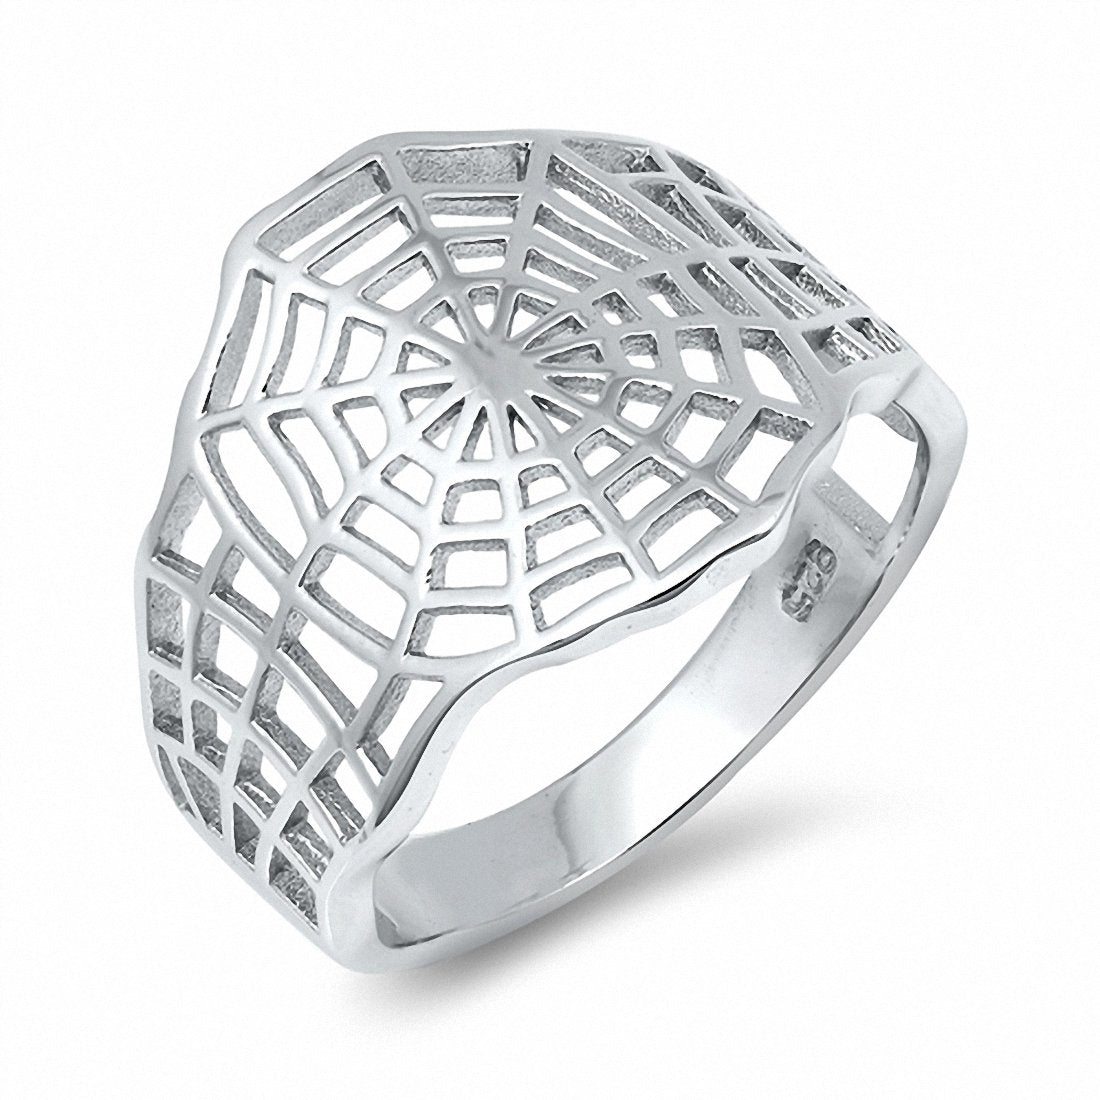 Spider Web Band Ring Solid Plain 925 Sterling Silver Choose Color